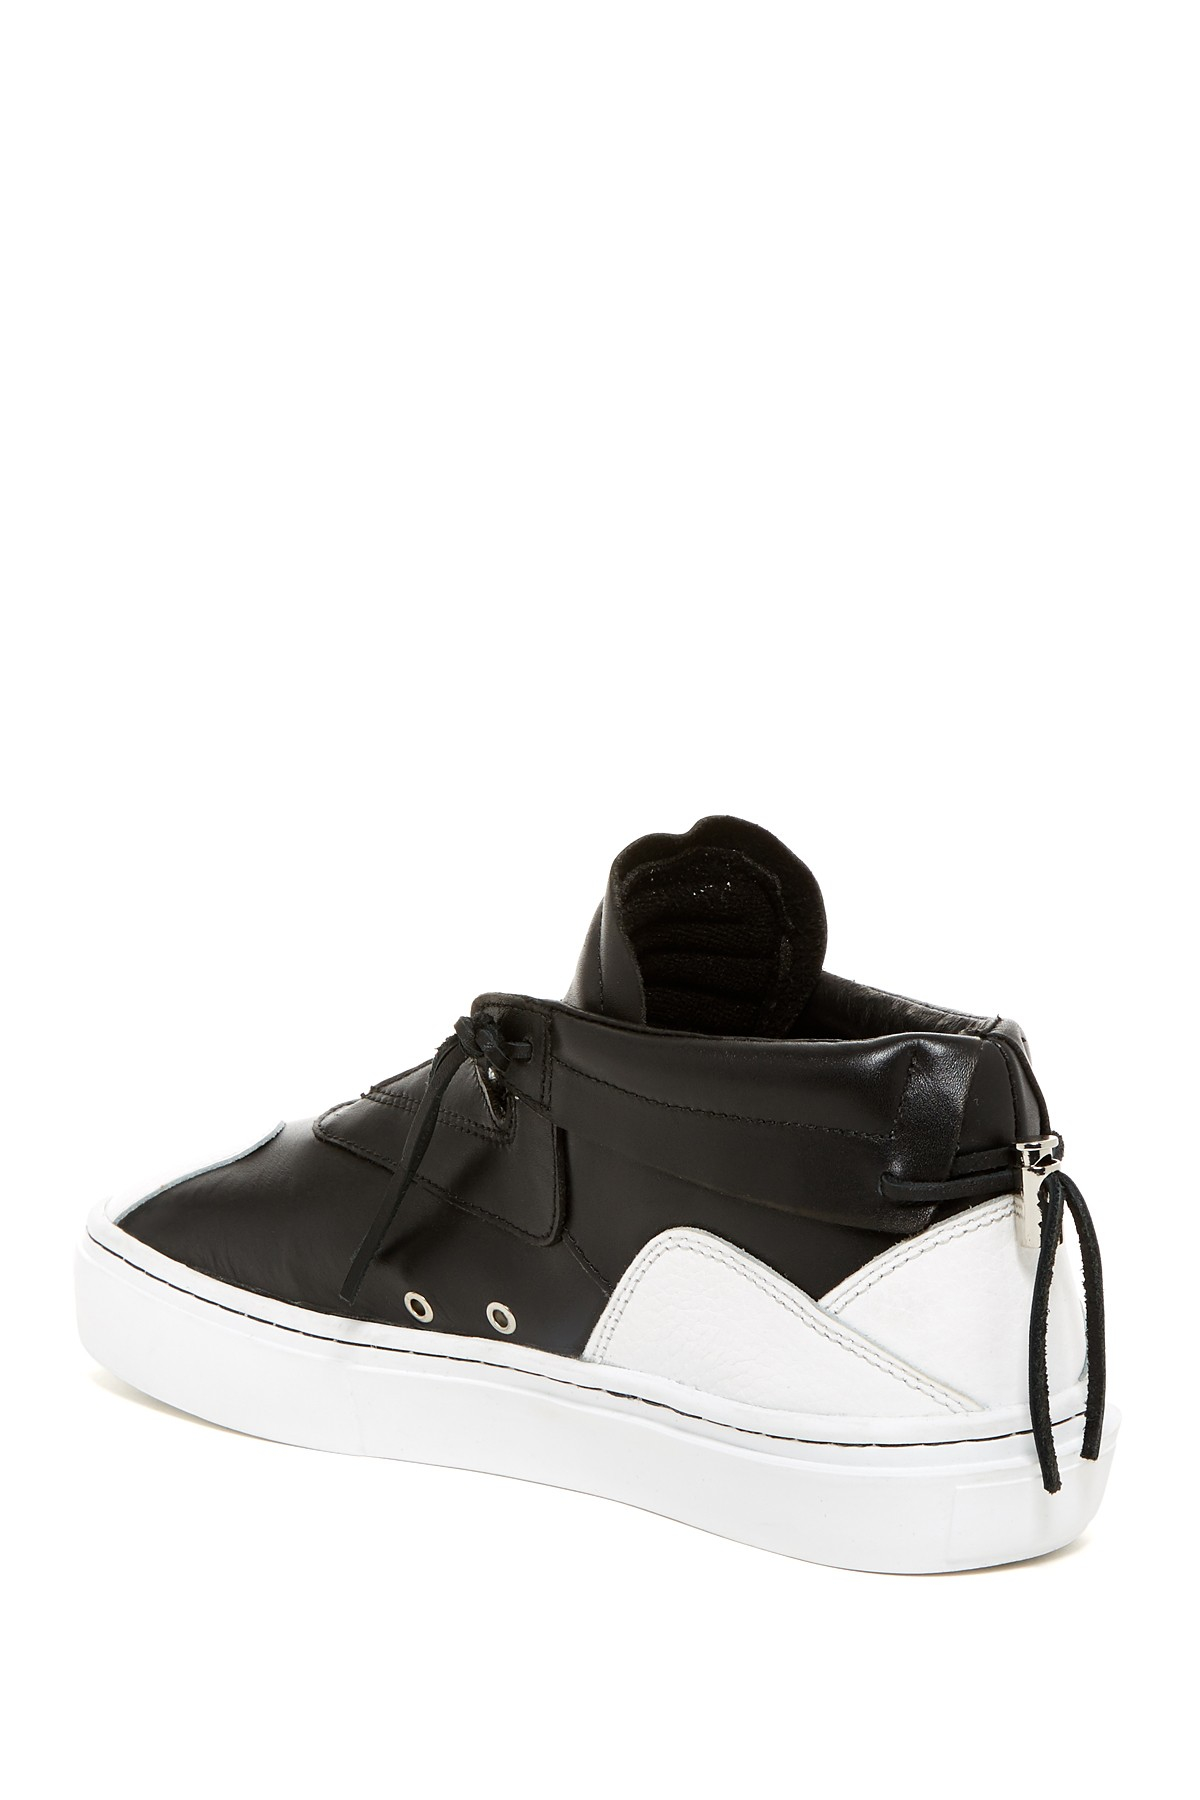 Clear Weather The Everest Mid Top Sneaker In Black For Men